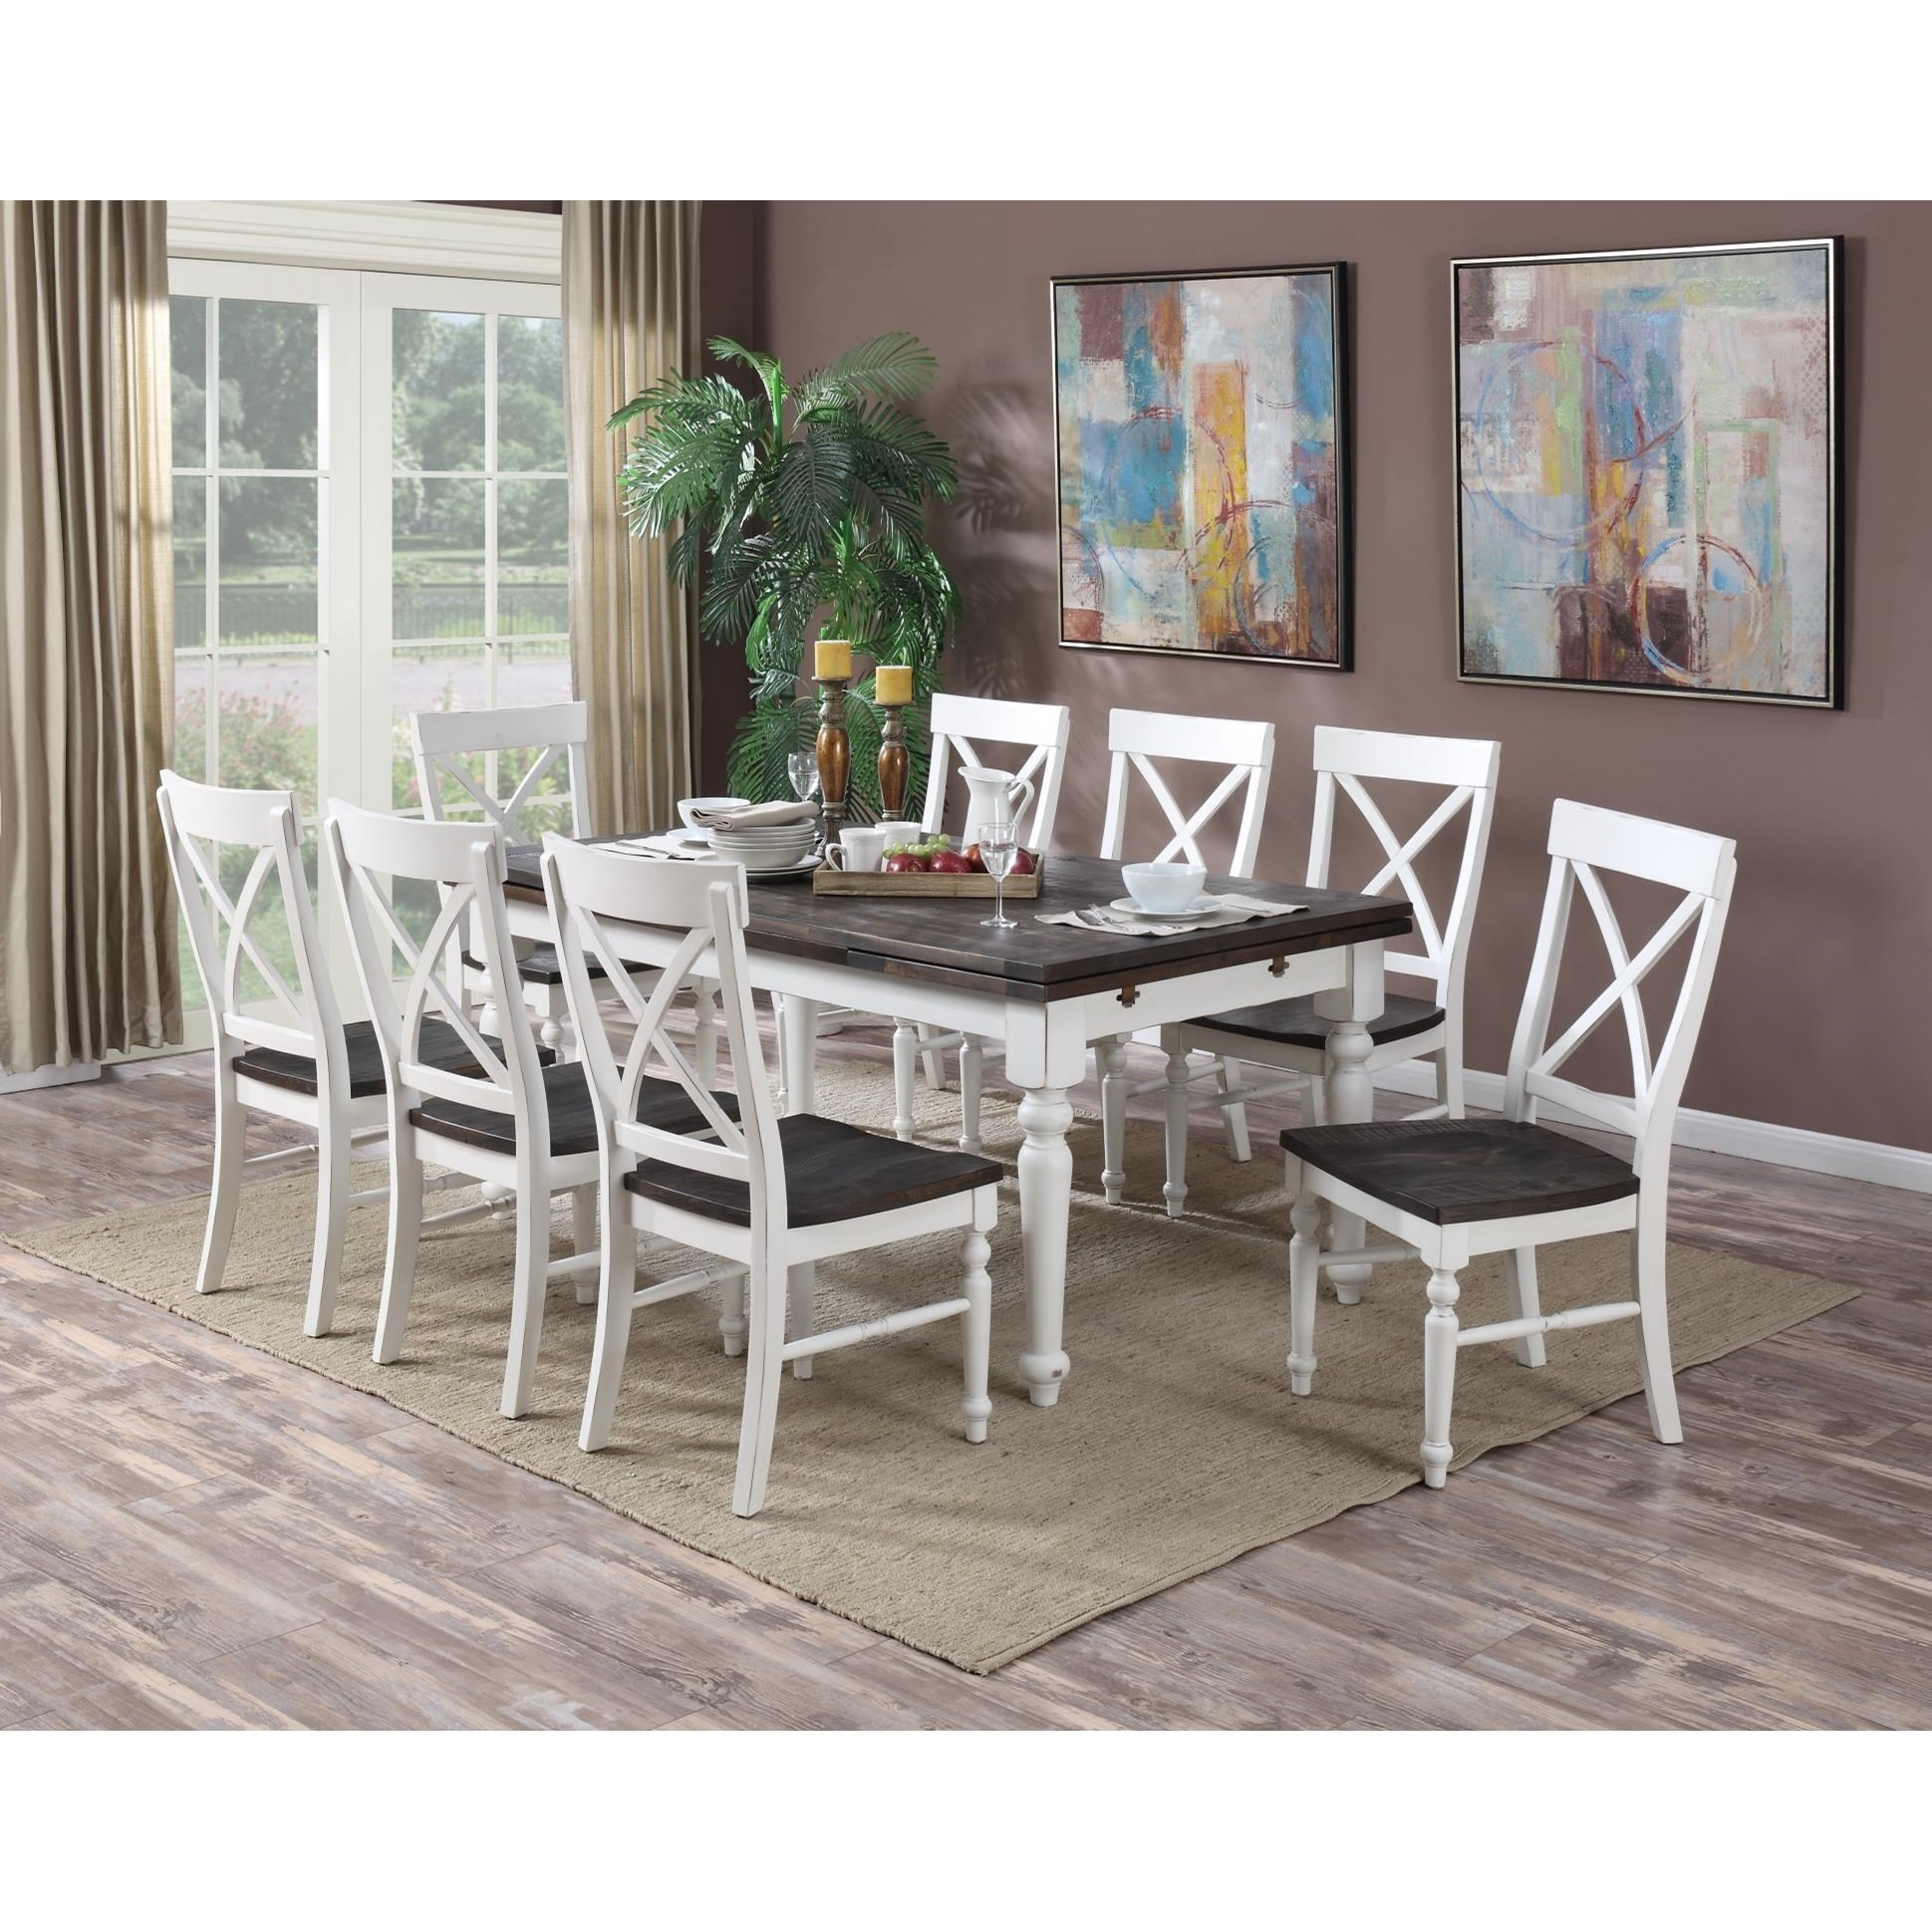 Mountain Retreat 5 Piece Dining Table and Chair Set by Emerald at Furniture Fair - North Carolina